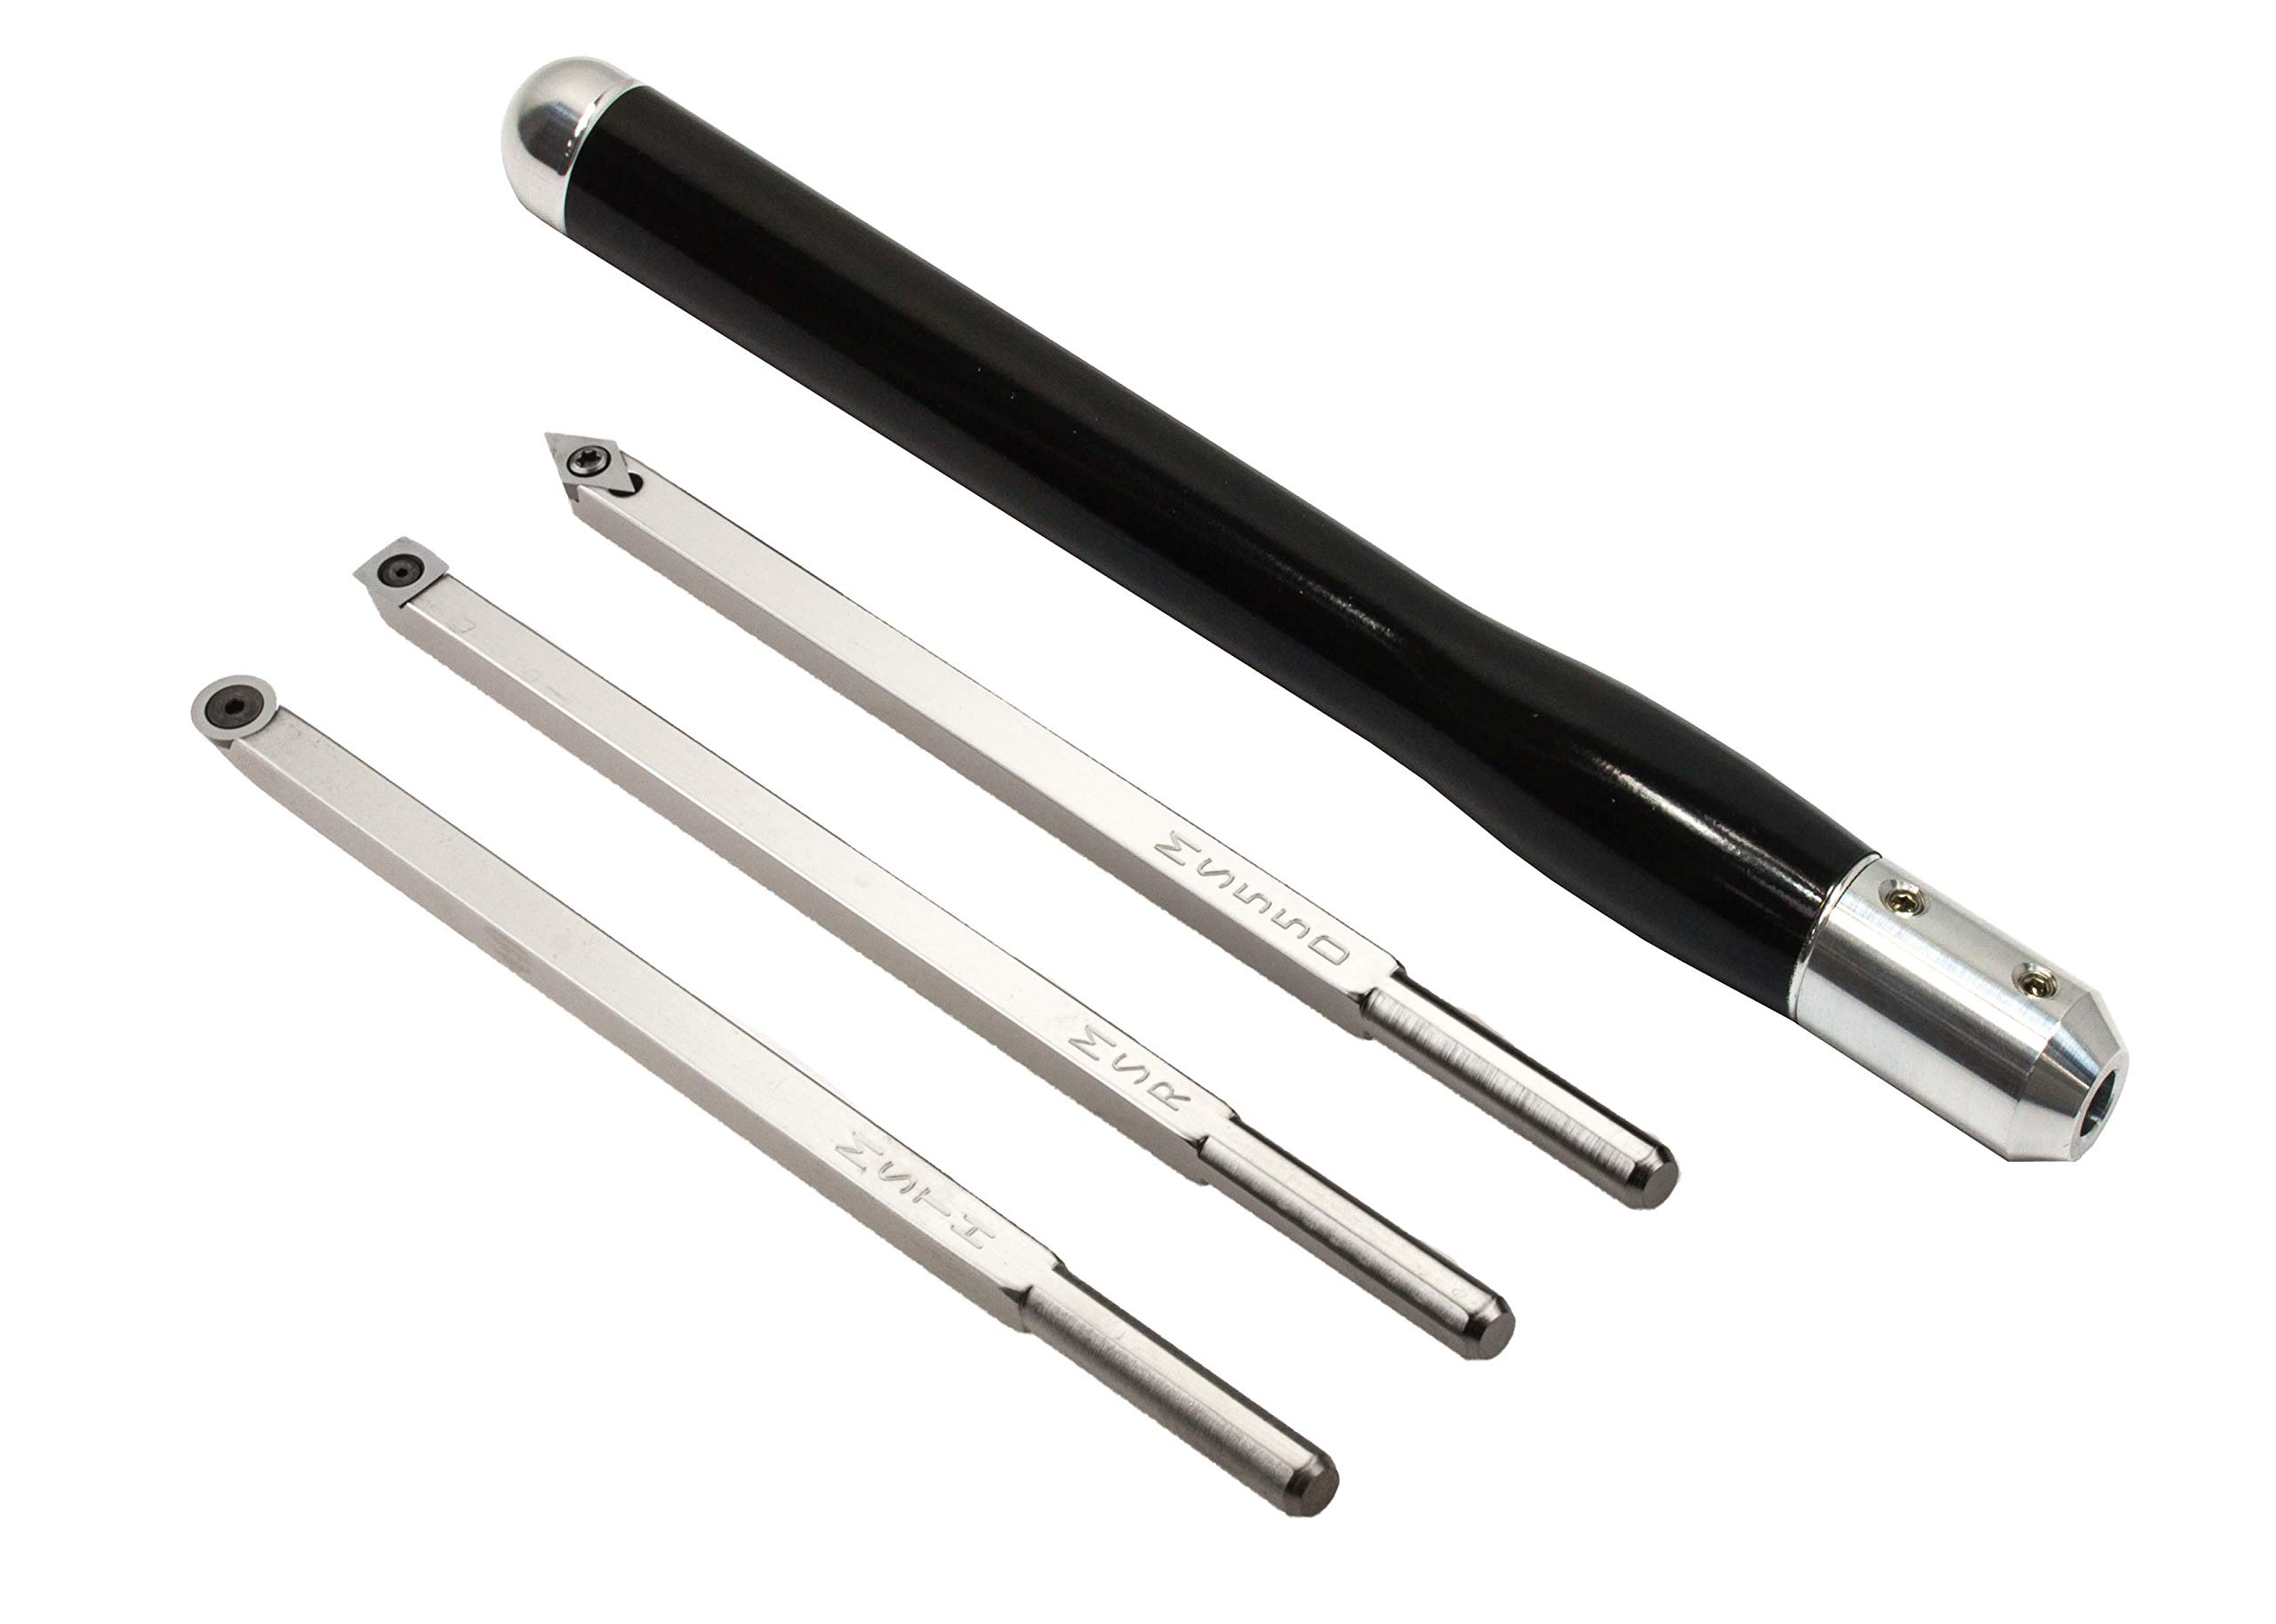 Simple Woodturning Tools Set of 3 Mid-Size Carbide Turning Tools with Interchangeable Handle for Wood Lathe, Stainless Steel, USA Made (3 Tools w/Super Mirror Black Handle)